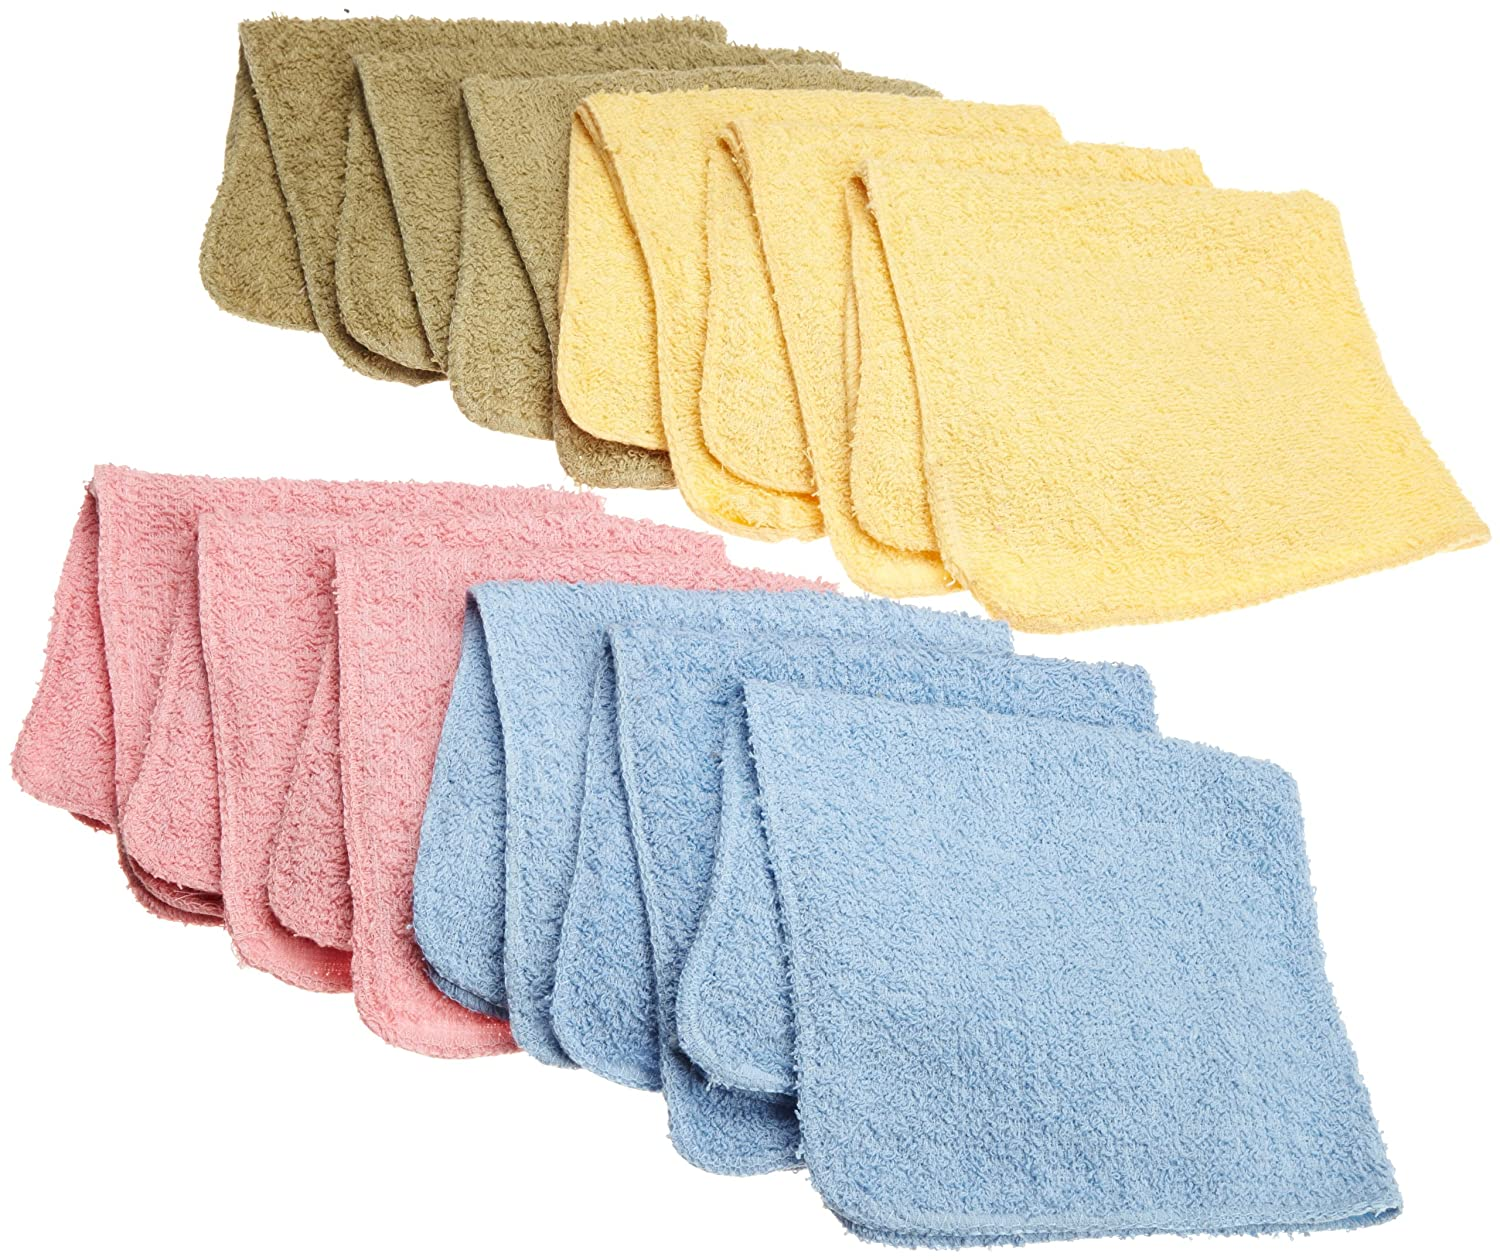 Ashley Mills Wash Cloths 12 by 12-Inch,Yellow/Blue/Sage/Rose, 12-Pack SM Products WC0065